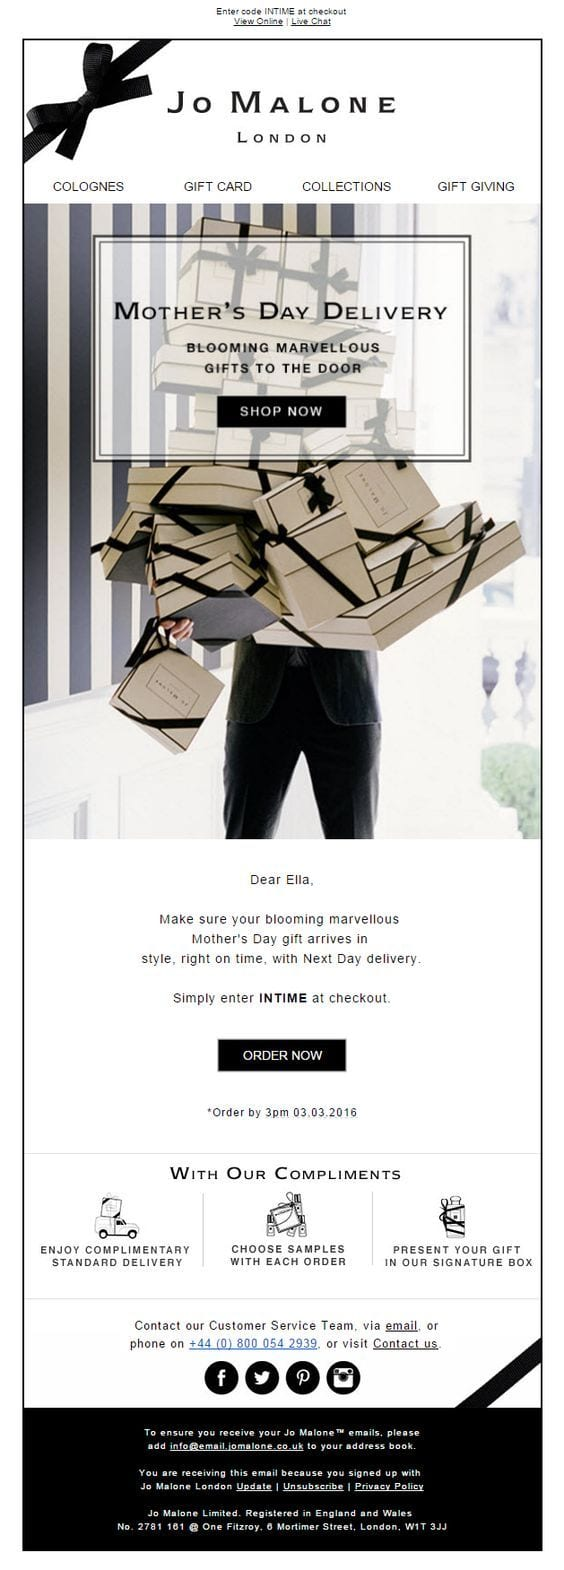 jo malone mothers day email